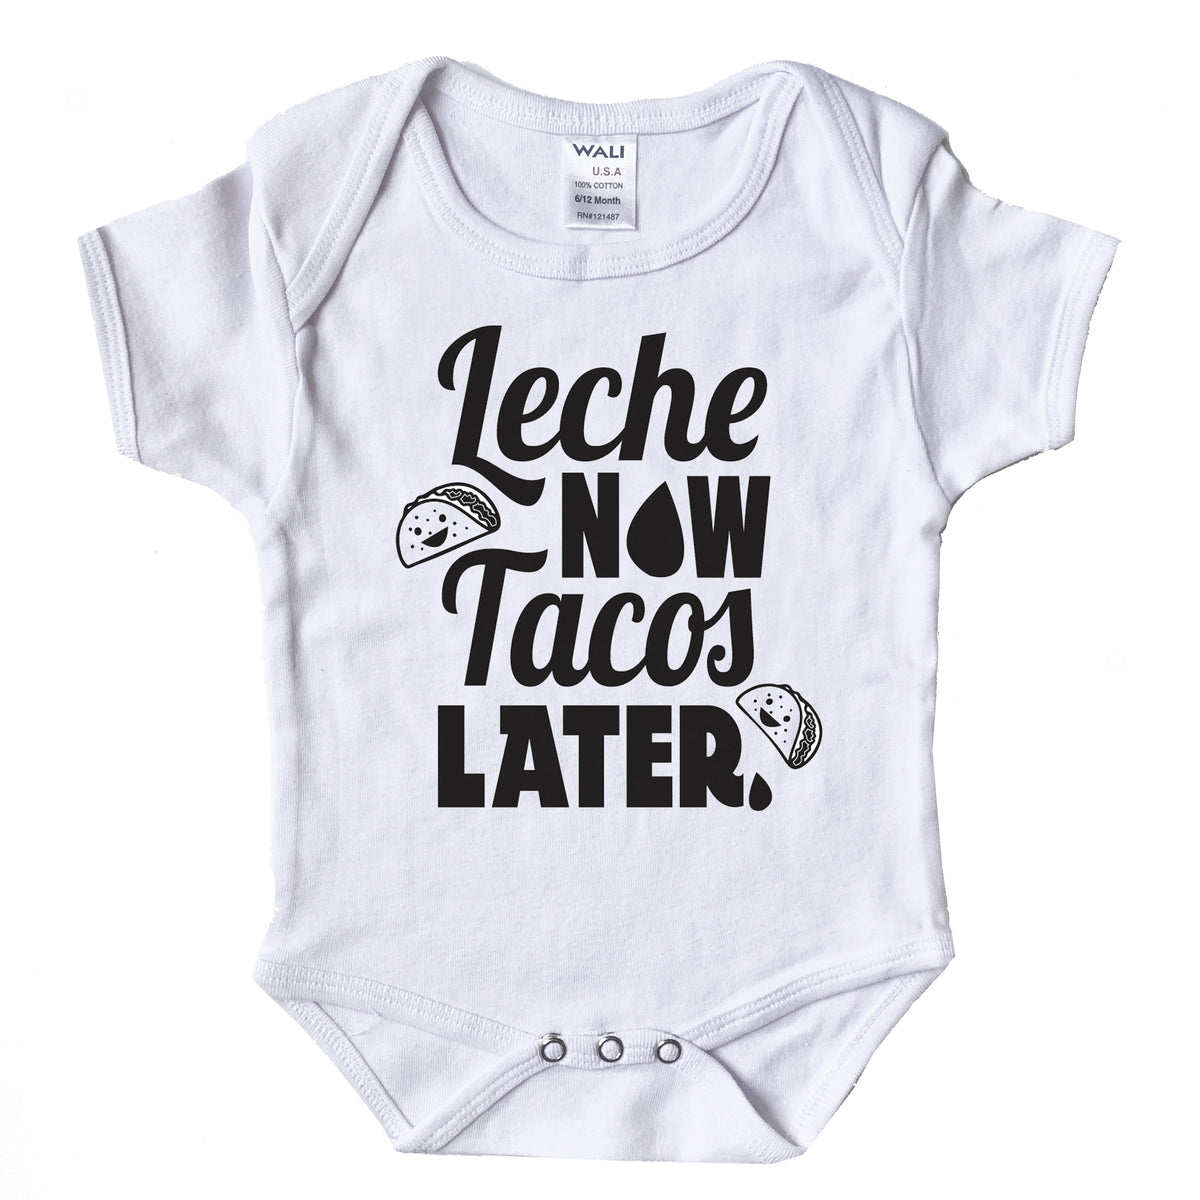 Mi LegaSi Leche Now Tacos Later Baby Onesie White - Mi LegaSi